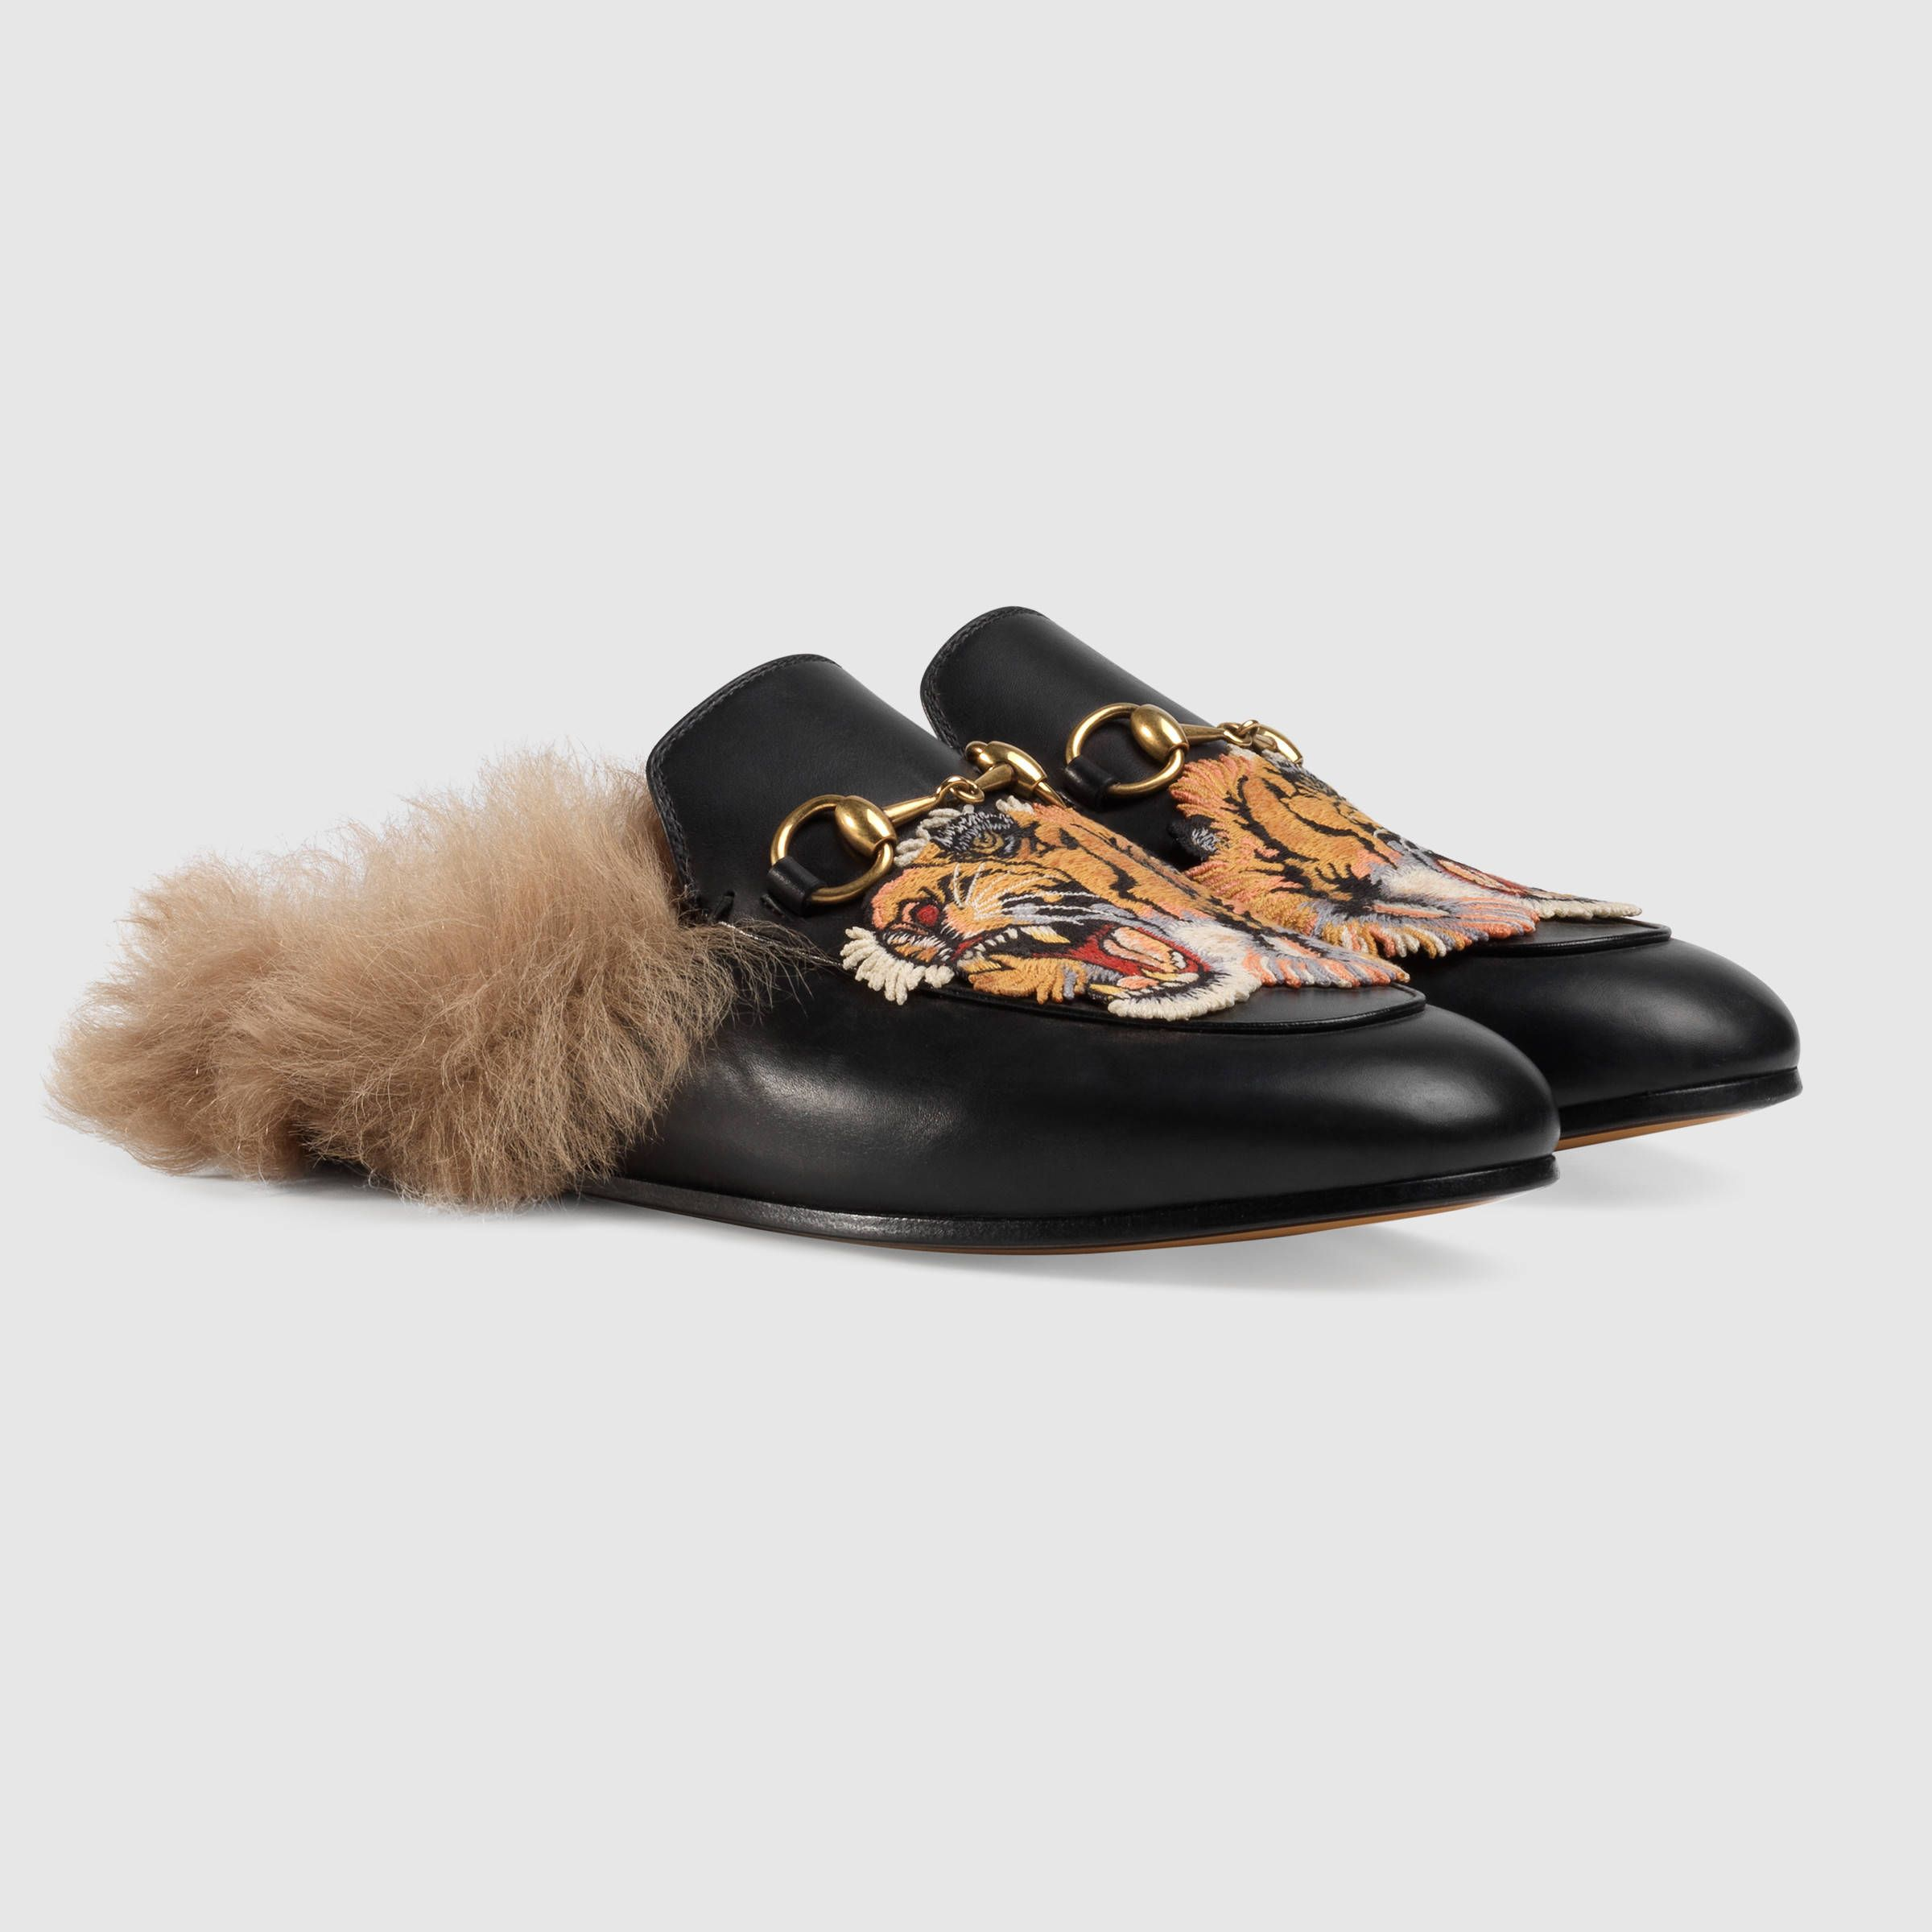 Gucci Princetown leather slipper. Gucci OutletCheap GucciShoes For  WomenLeather ...